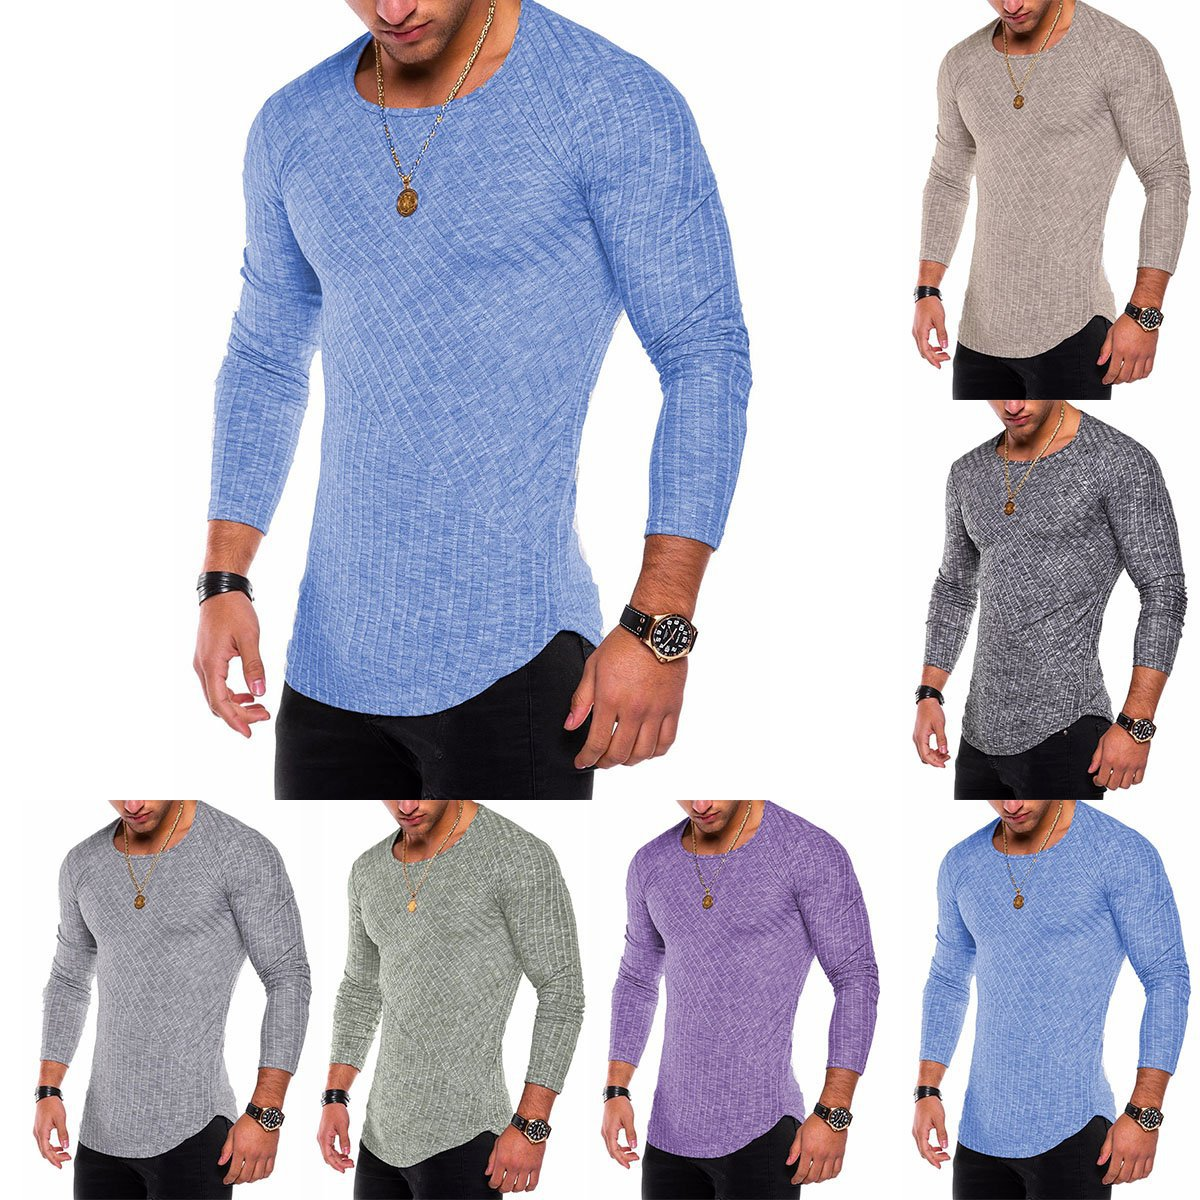 Casual Long Sleeve T Shirt Men Slim Fit Tshirts Solid Plus Size T Shirts Mens Comfortable Tops Spring And Autumn Clothes S-4XL